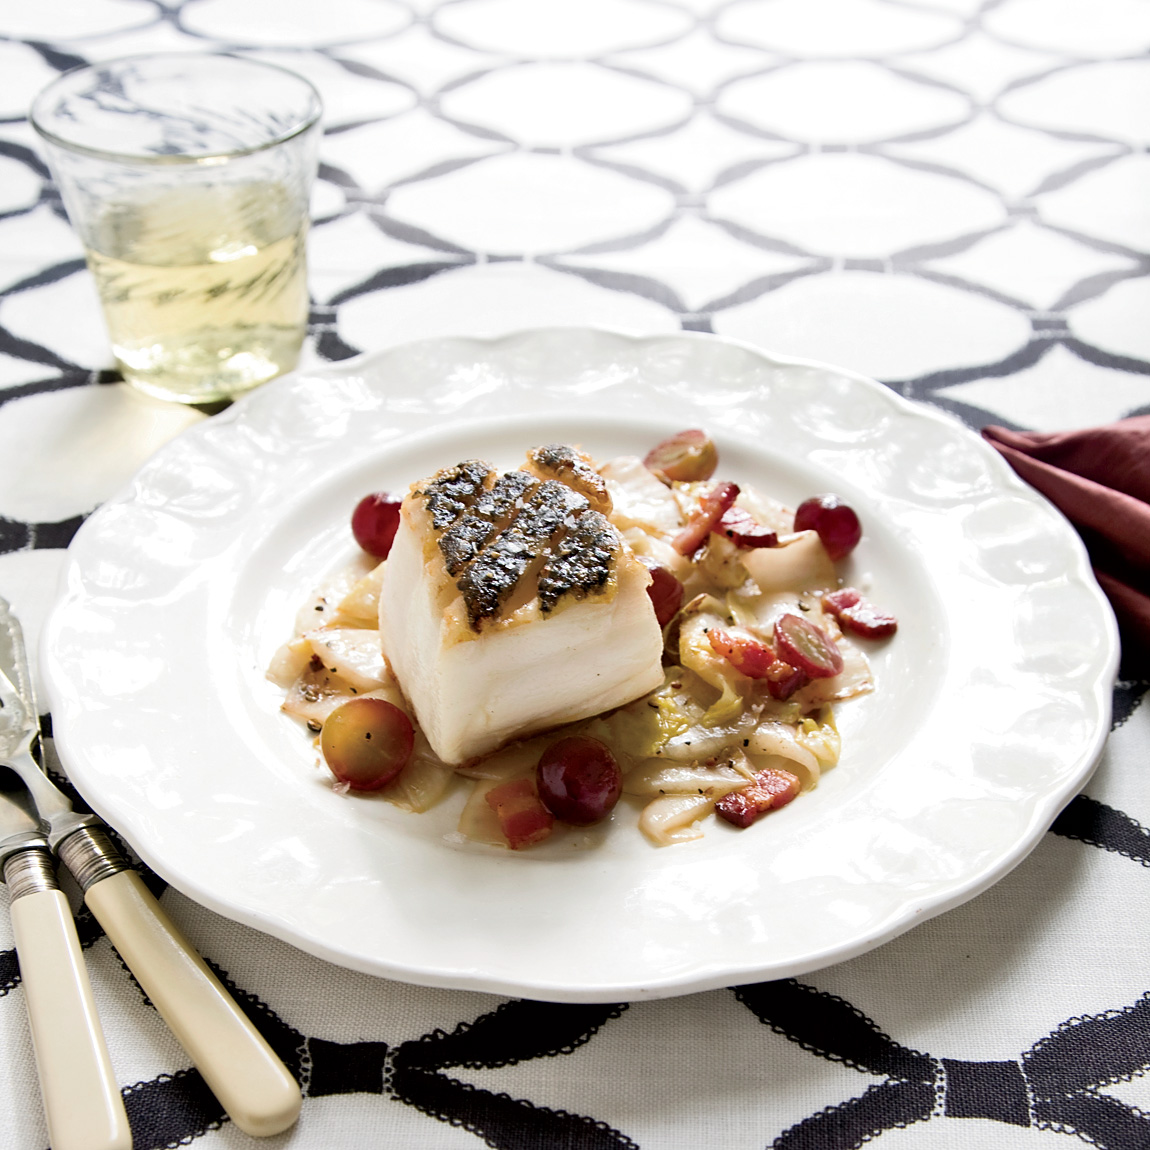 Pan-Seared Black Sea Bass with Endives and Grapes